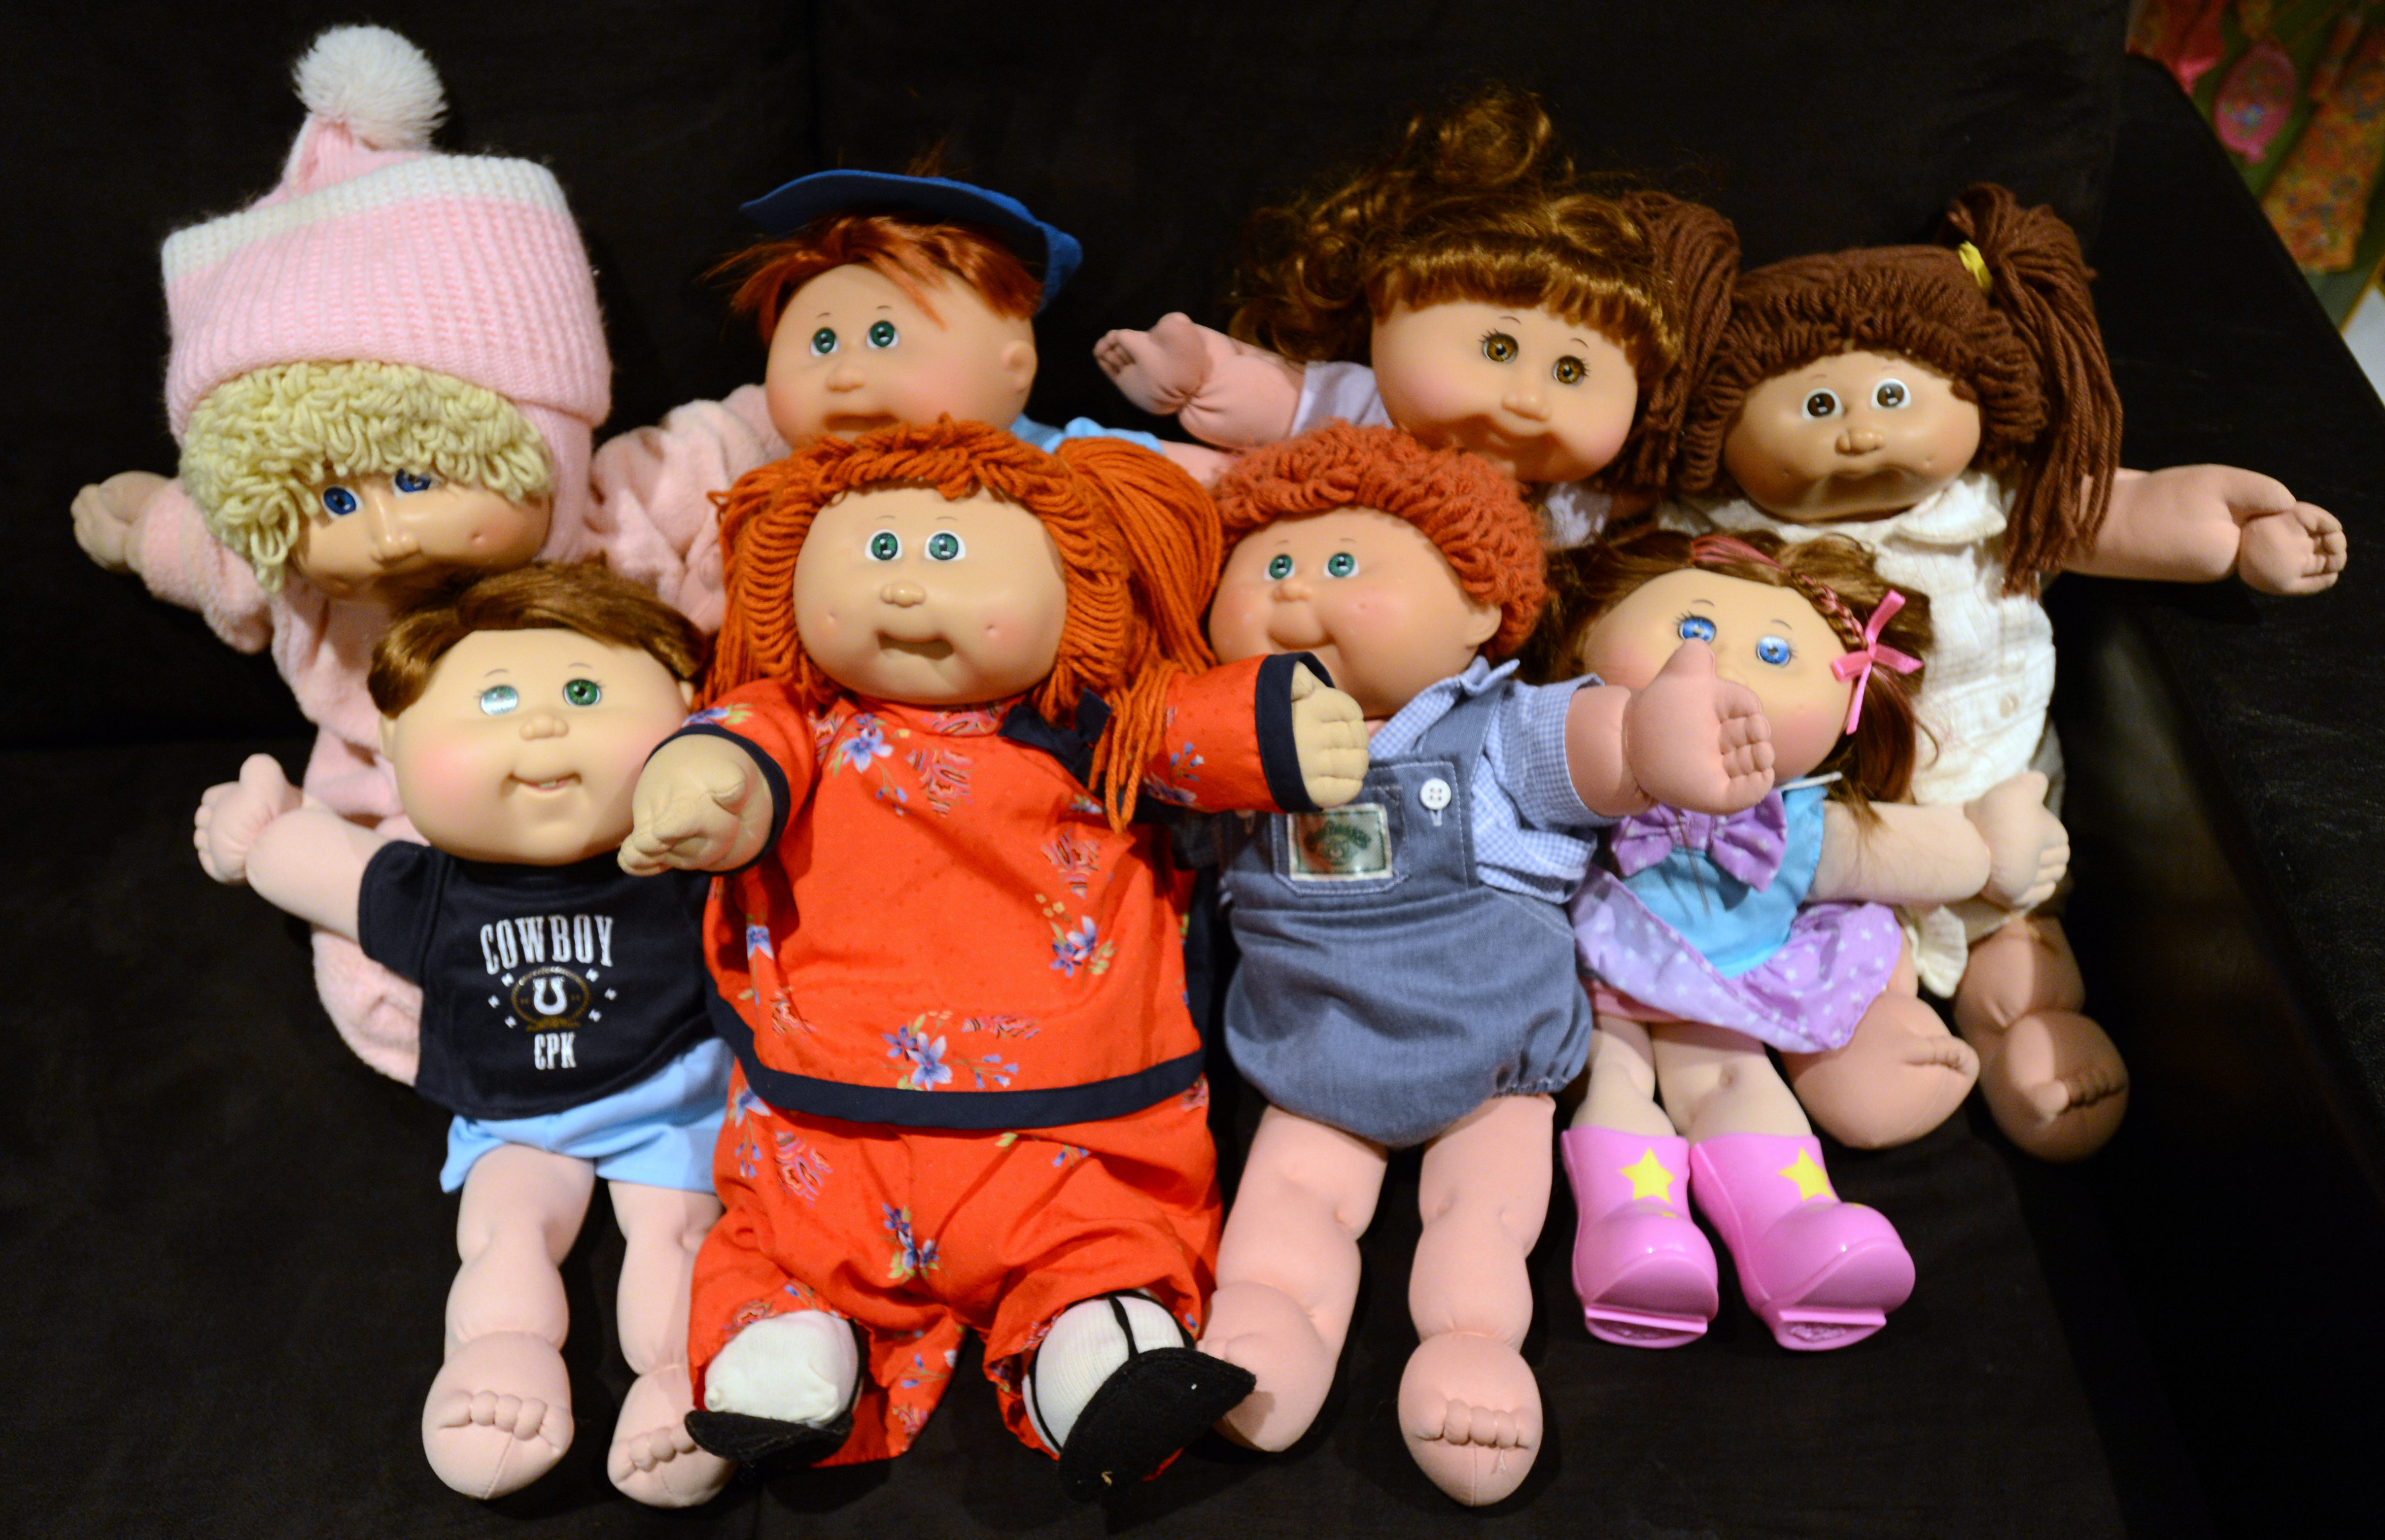 Cabbage Patch dolls